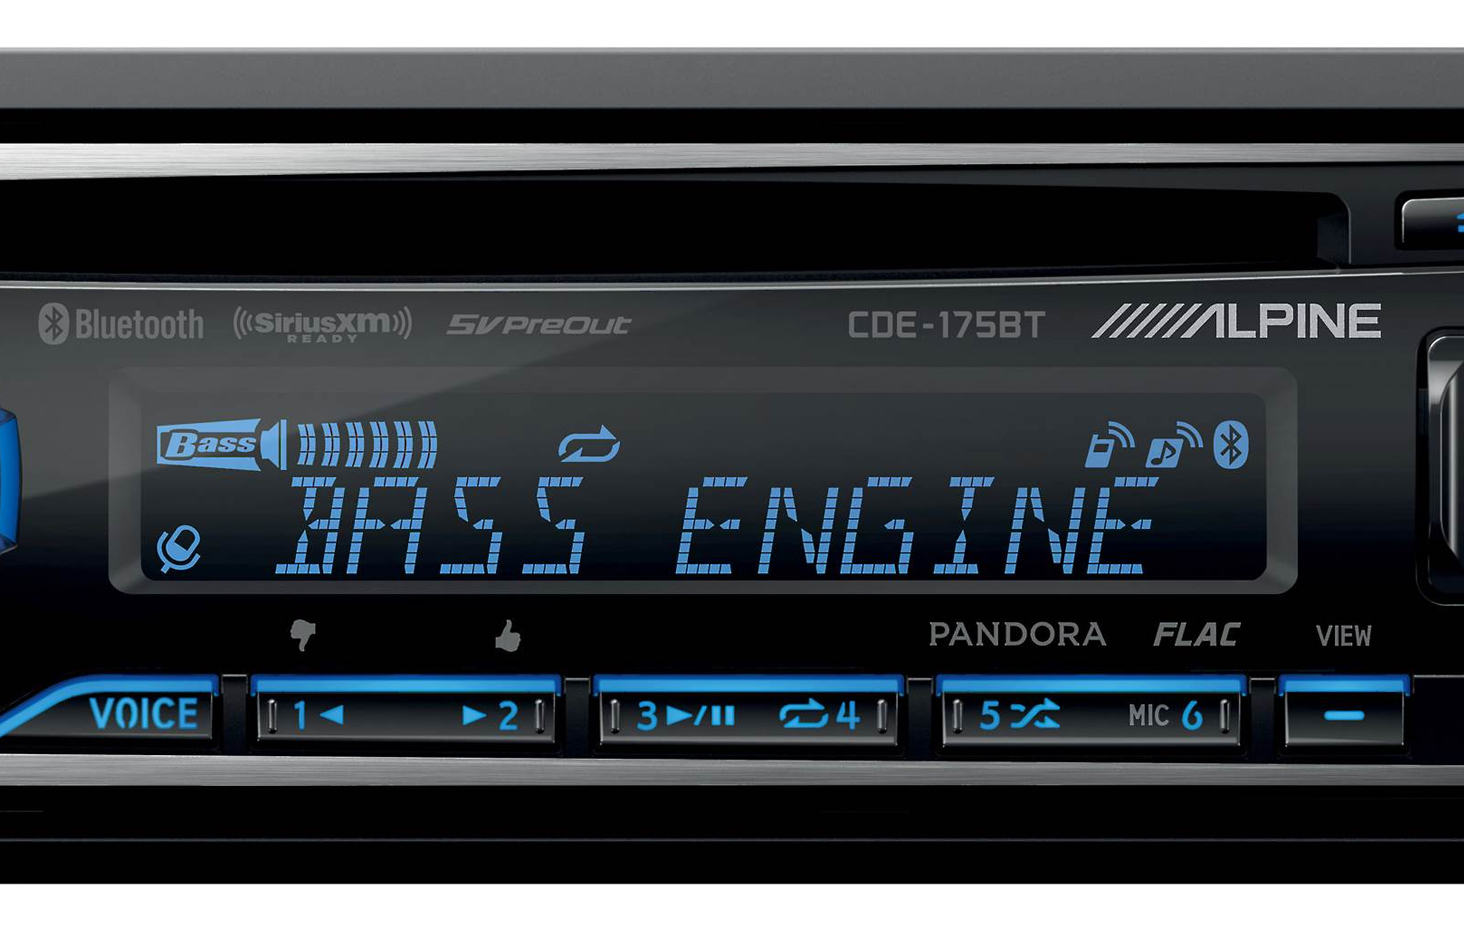 High-Contrast LCD Display And Easy Music Control